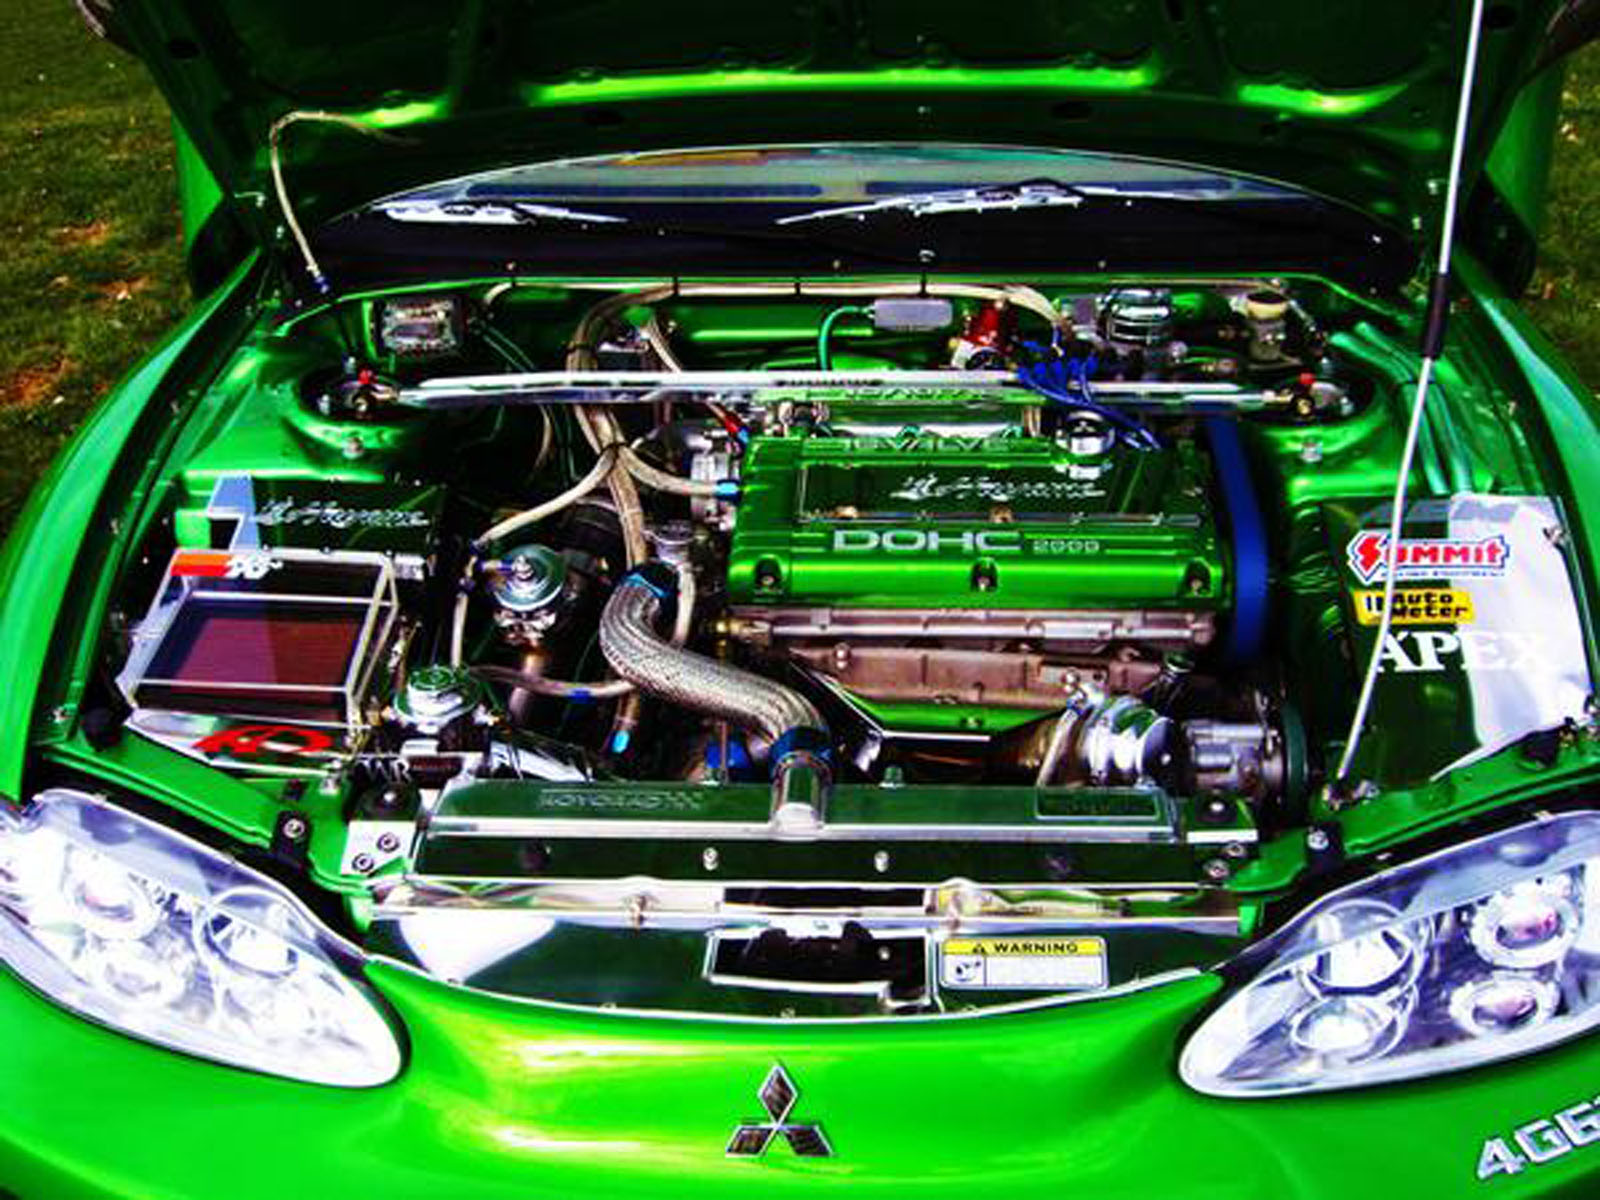 1996 mitsubishi green with envy super show street car eclipse gs t for sale pennsylvania modified car trader